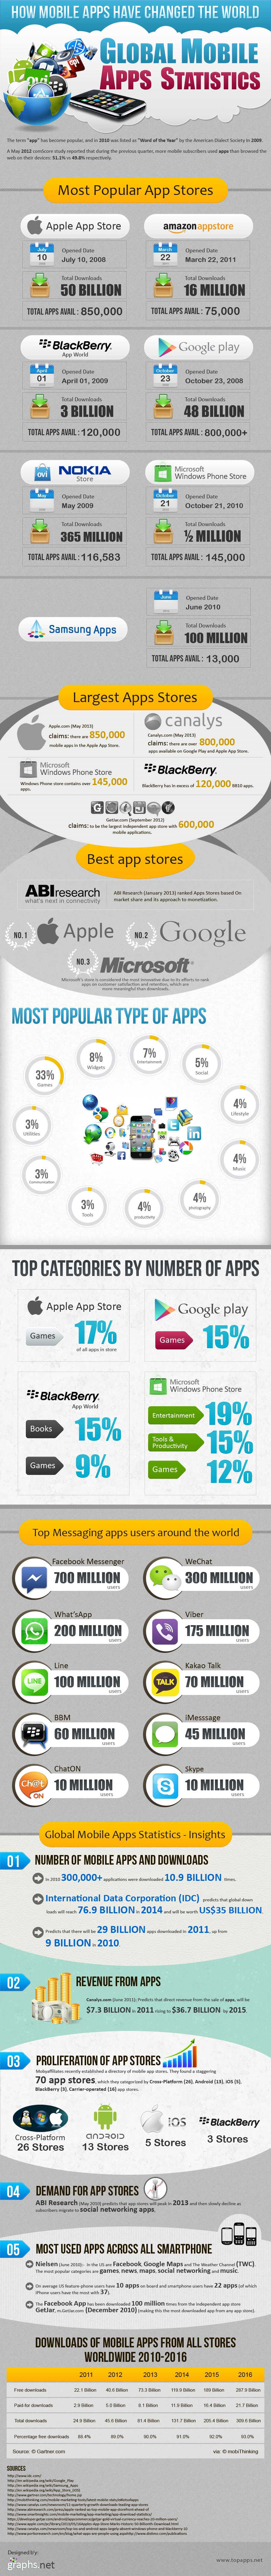 App World Statistics-Infographic